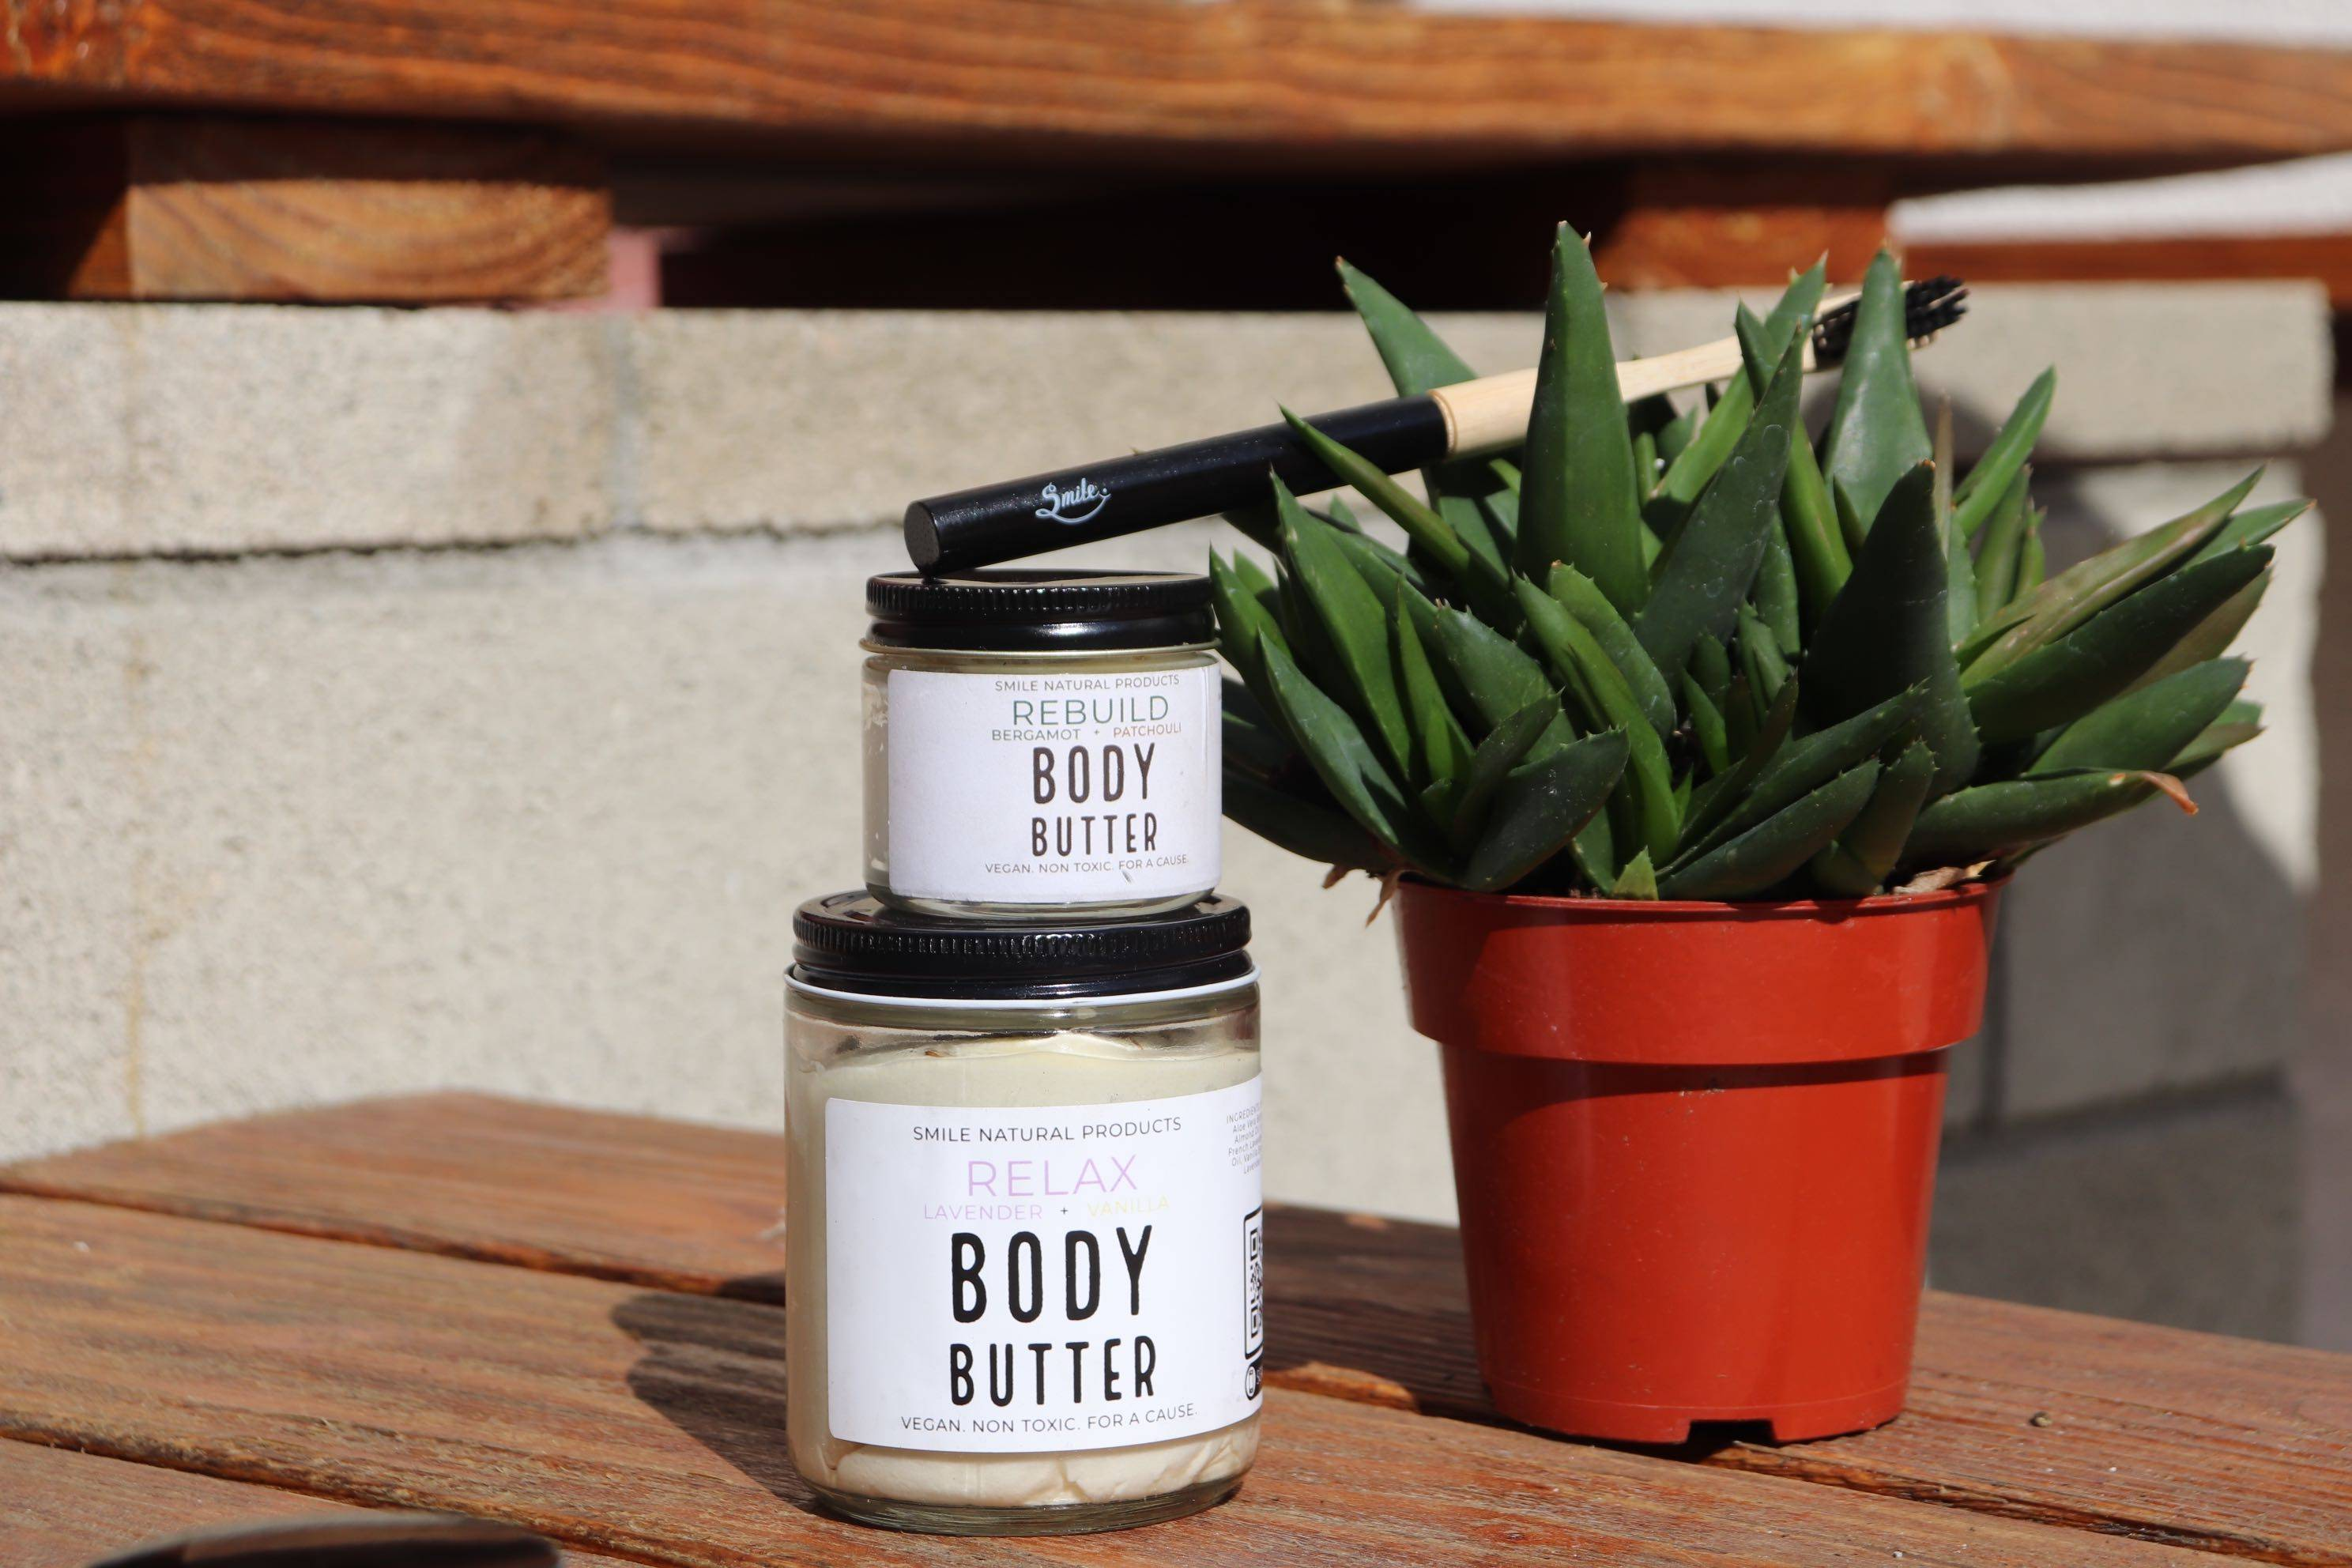 This natural body lotion is a Body Butter with a calming combination of lavender and vanilla scents in a velvety body butter that induces instant relaxation upon application or smell alone.